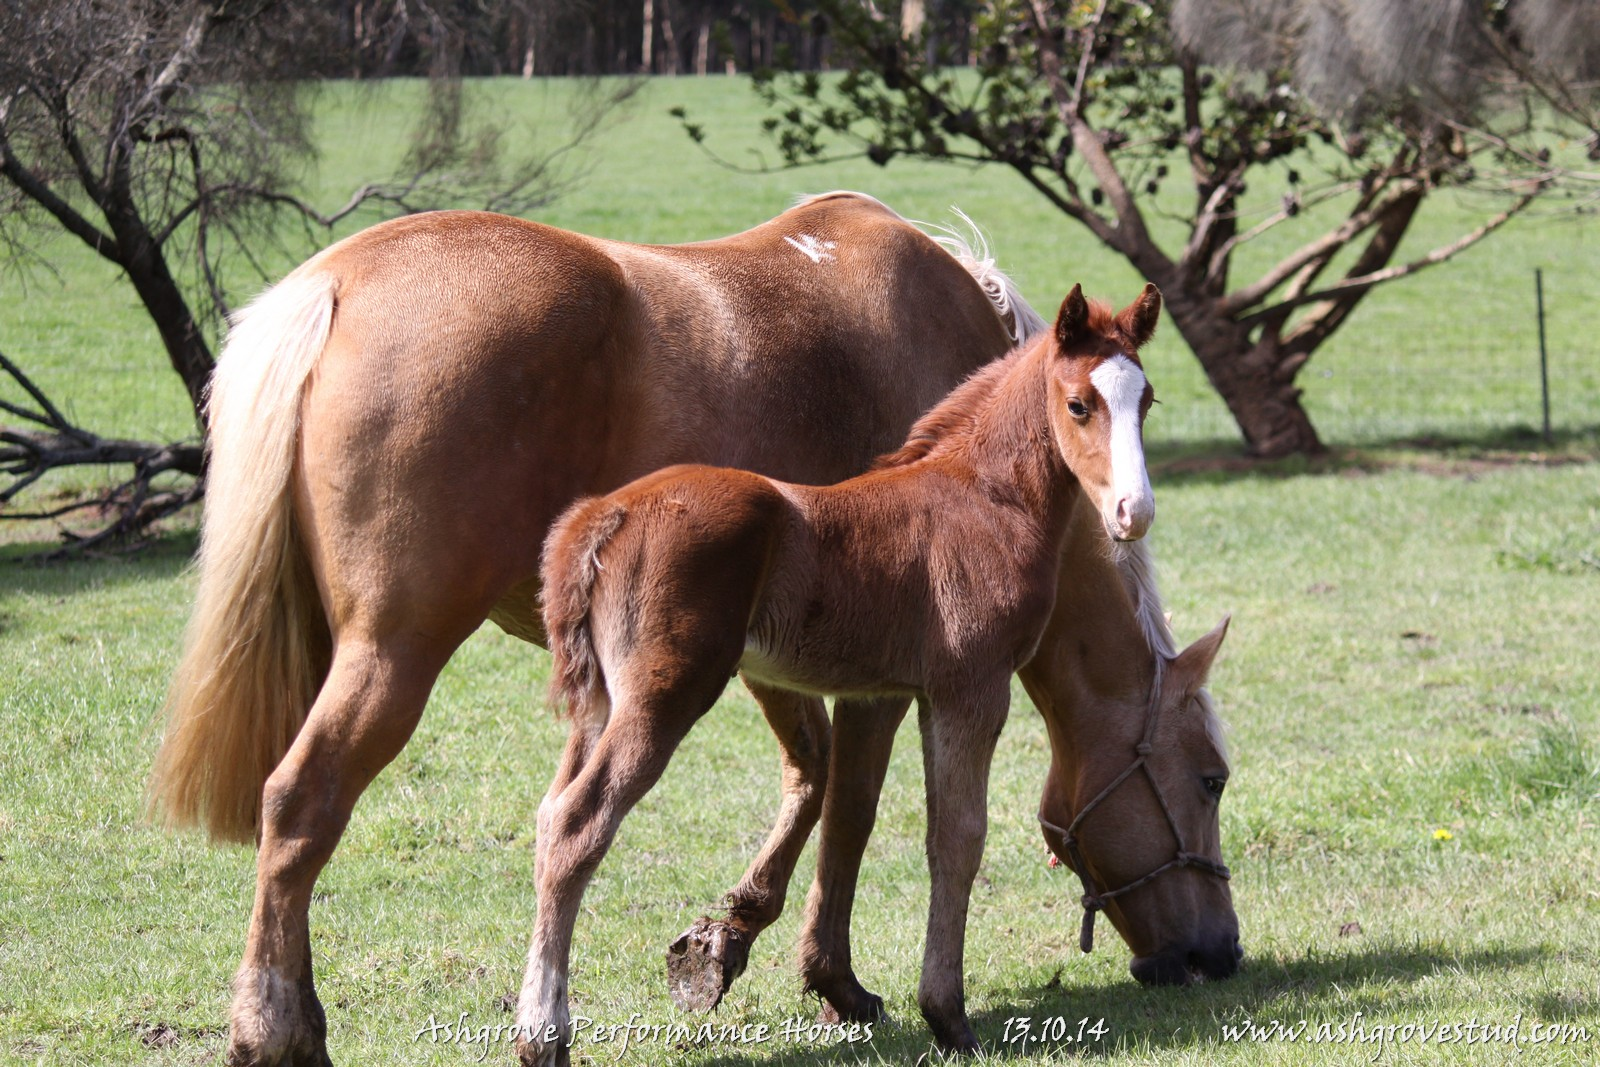 Foals and yearlings 13.10.14 360